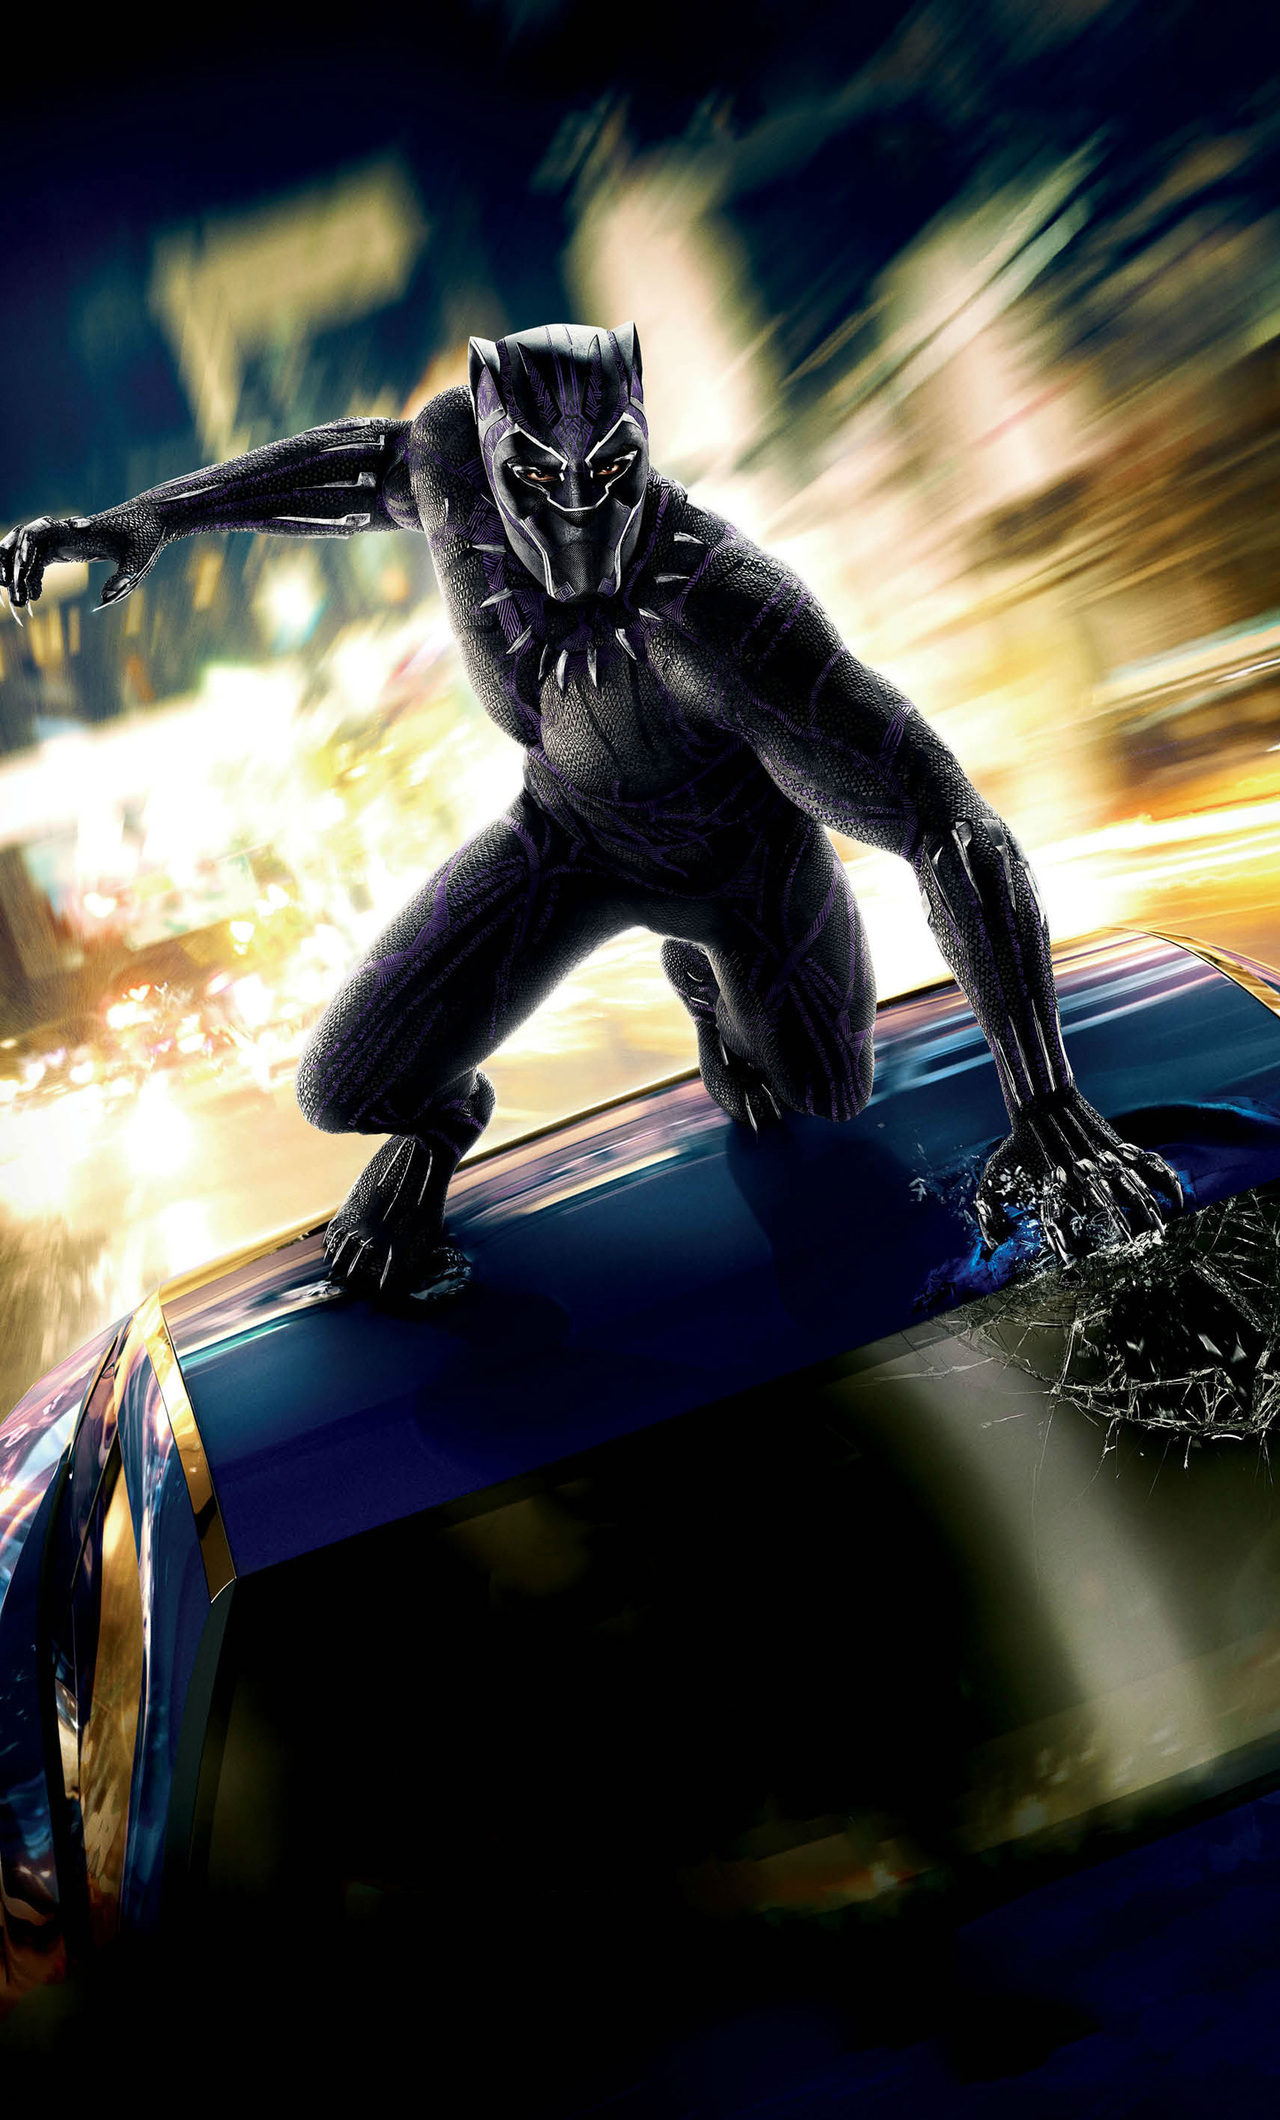 1280x2120 Black Panther 2018 International Poster Iphone 6 Hd 4k